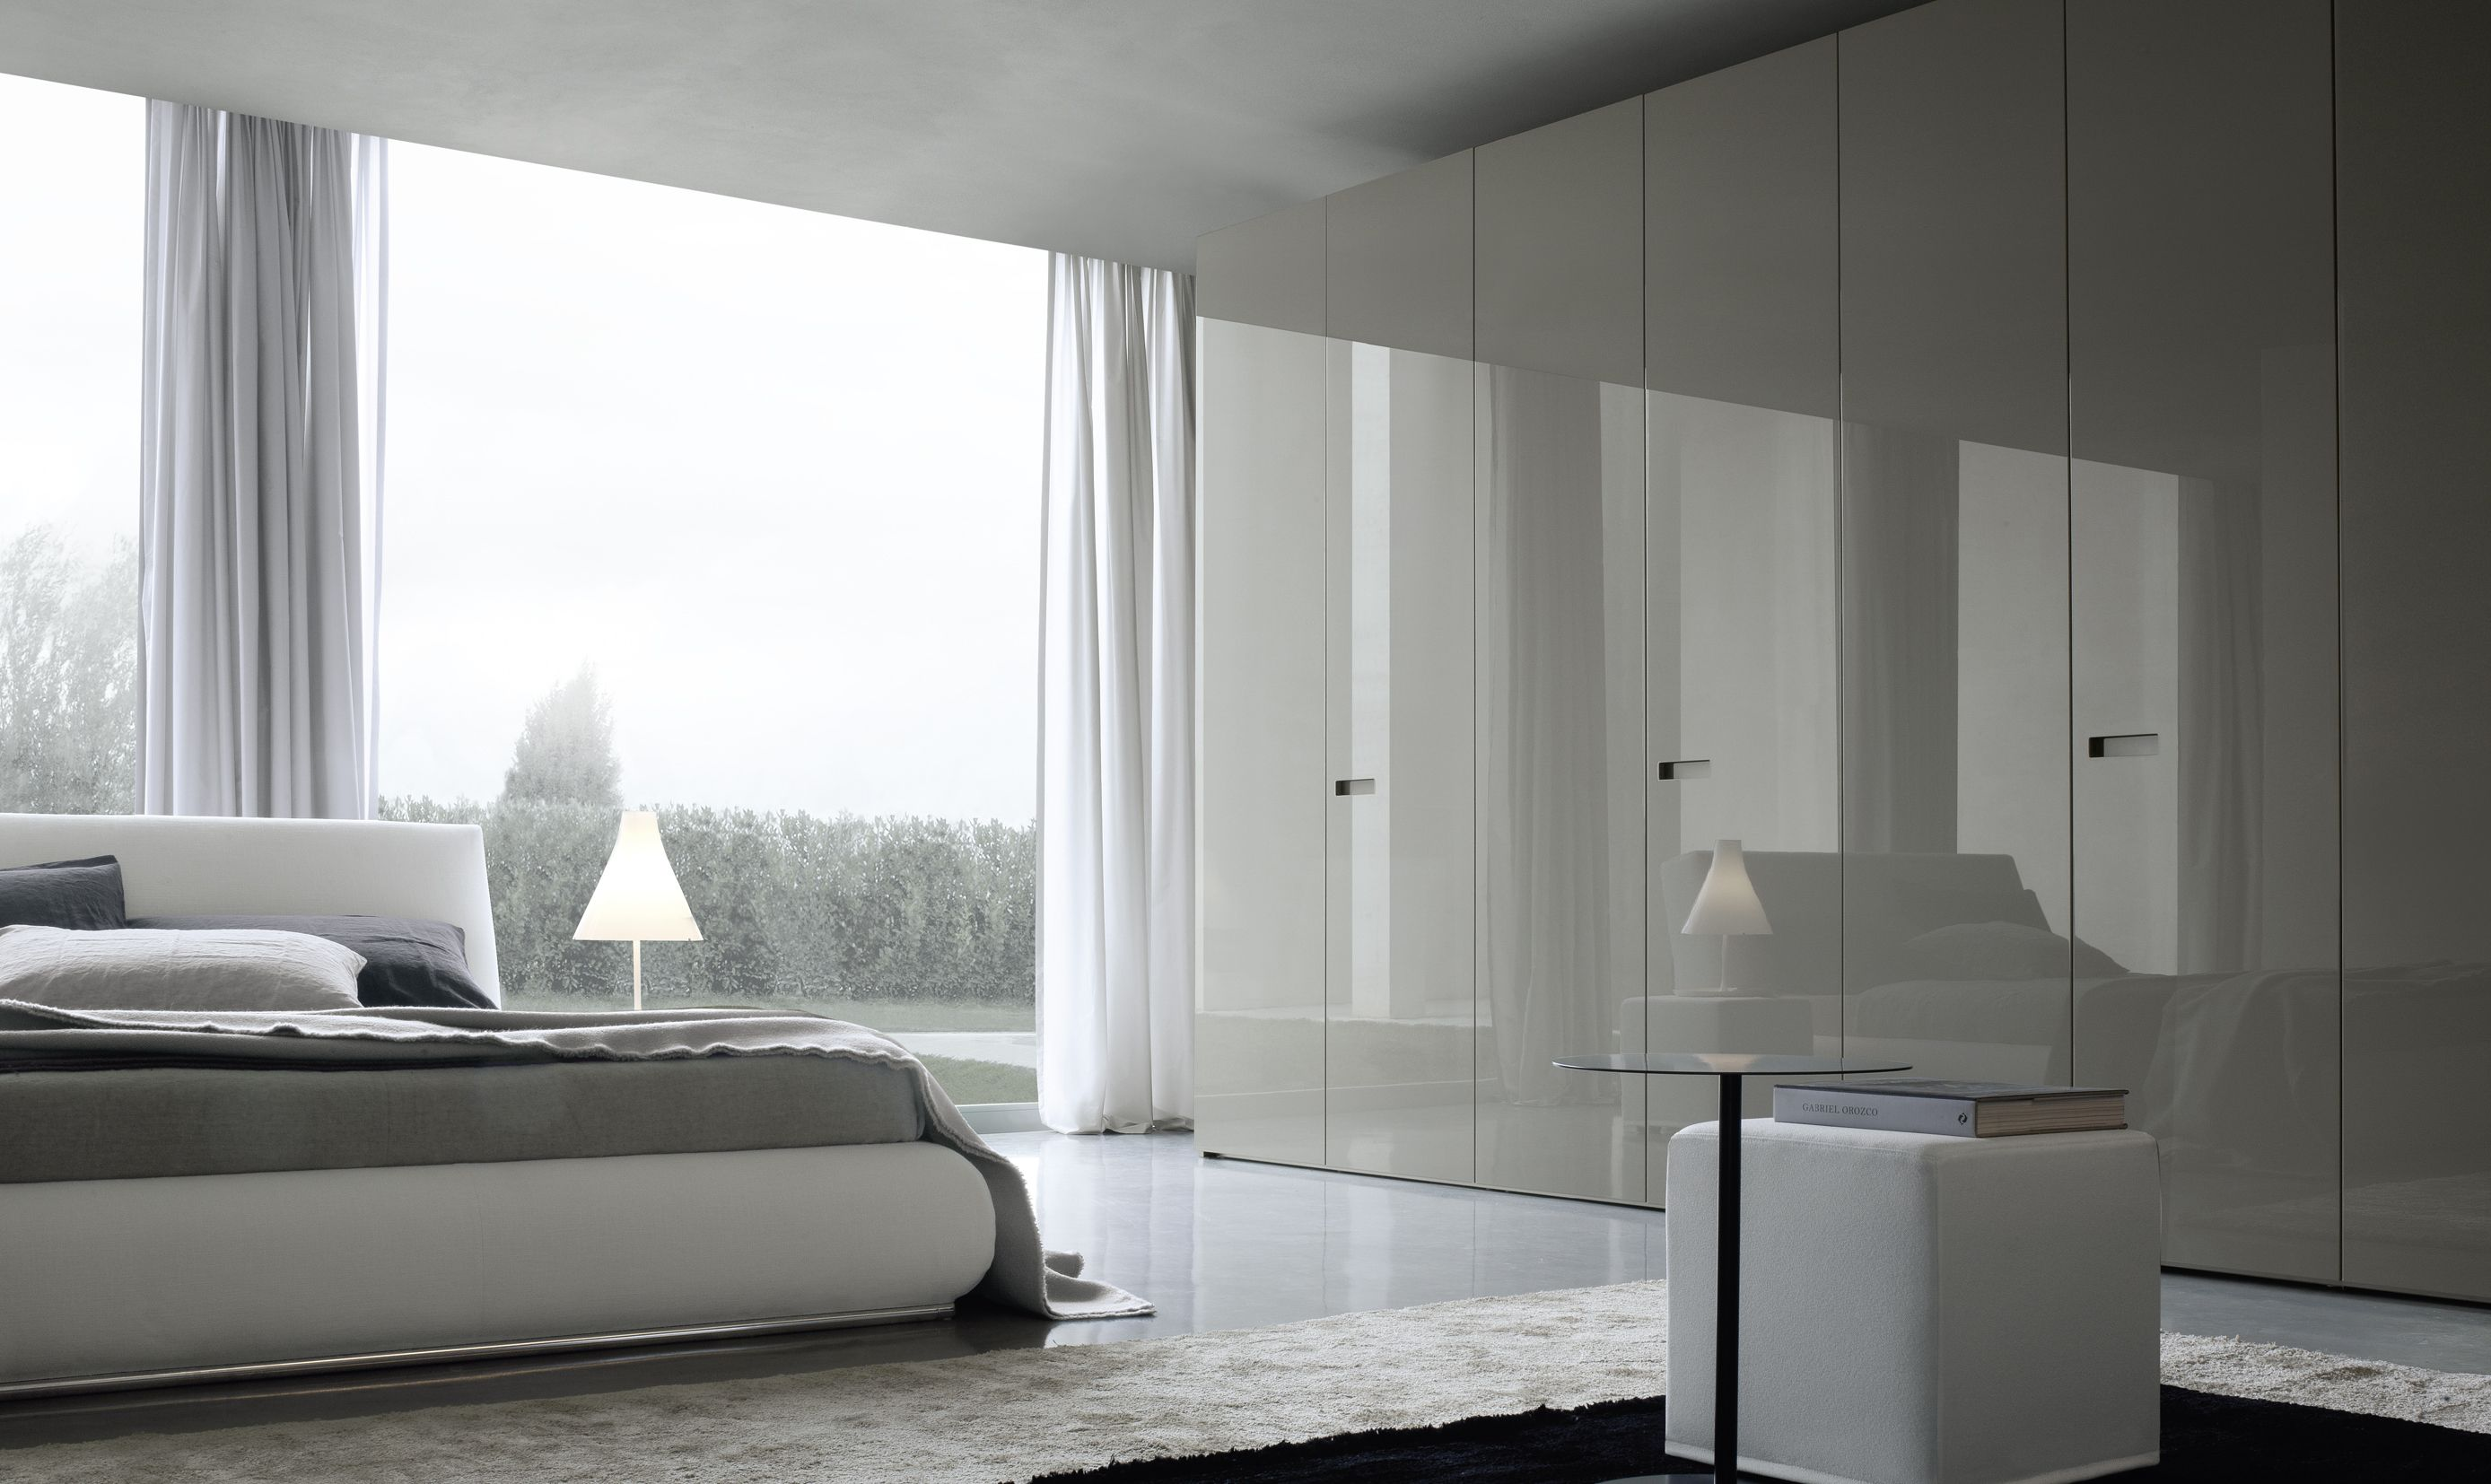 Modern Bedroom Storage Jesse Gap Hinged Door Wardrobes In London In Matt Or Gloss Lacquer